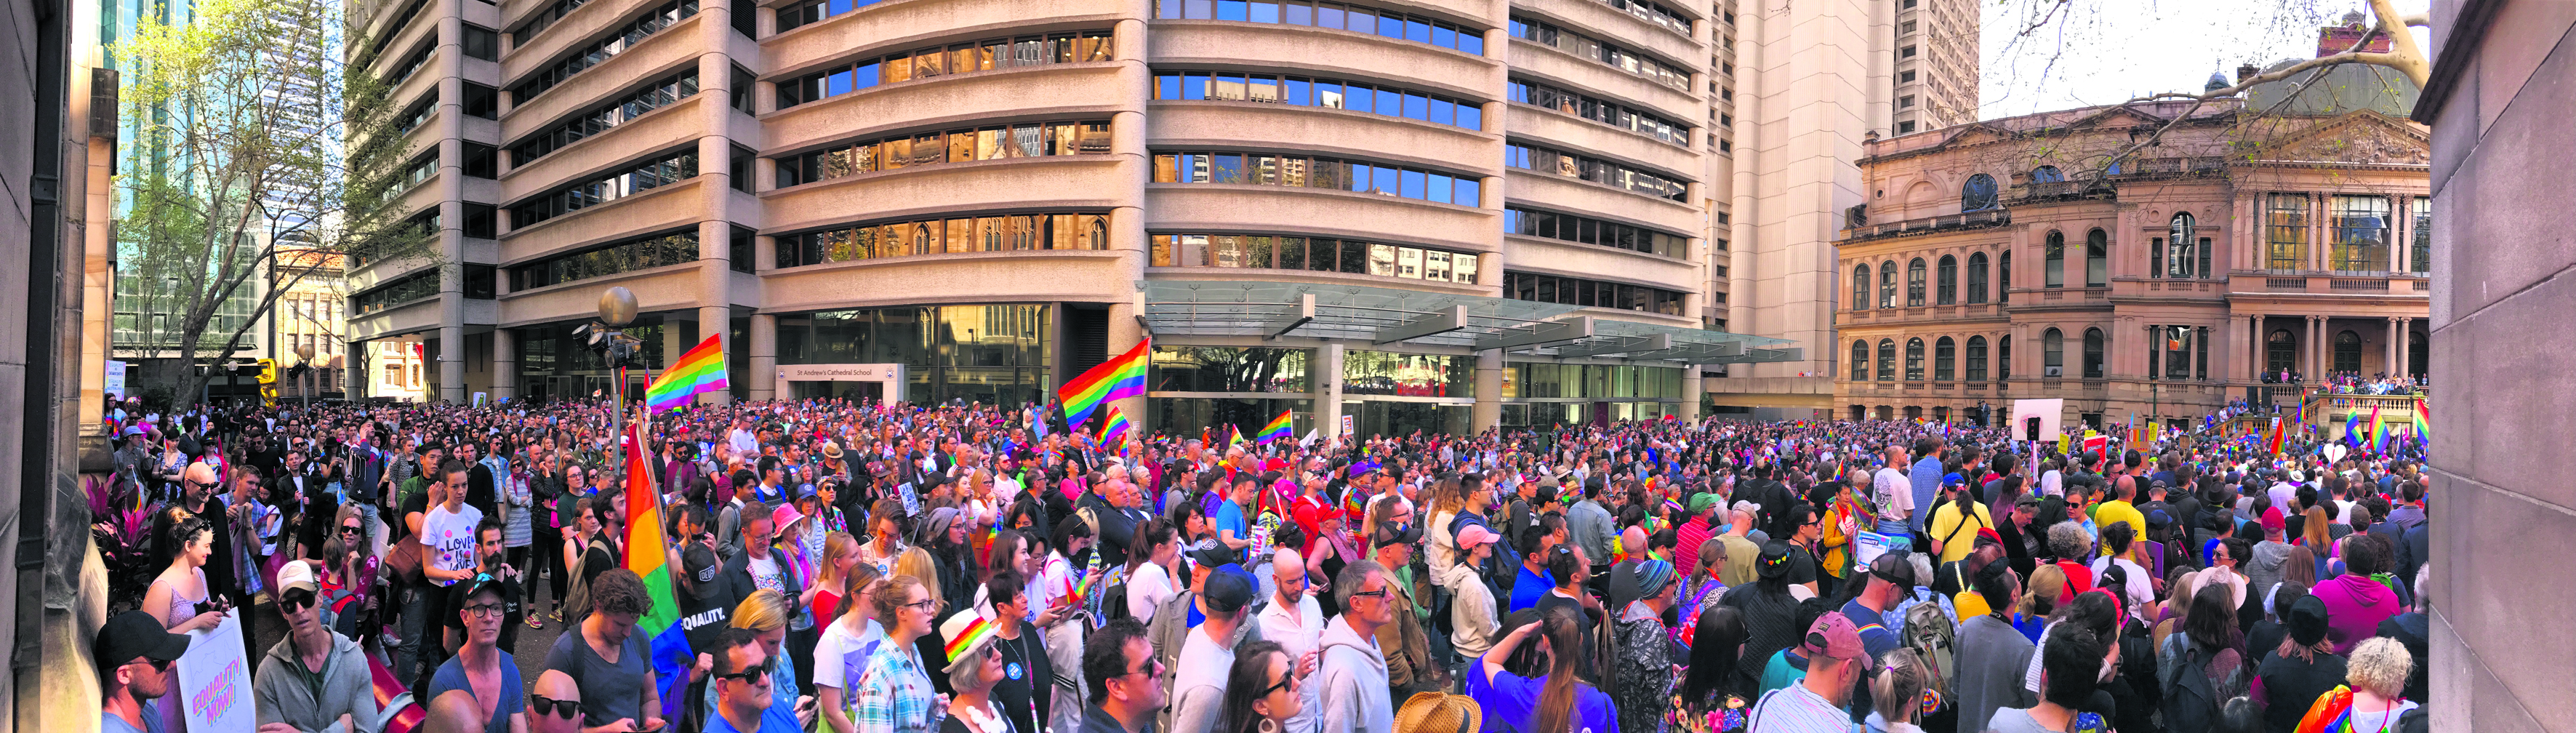 Sydney marches for equality